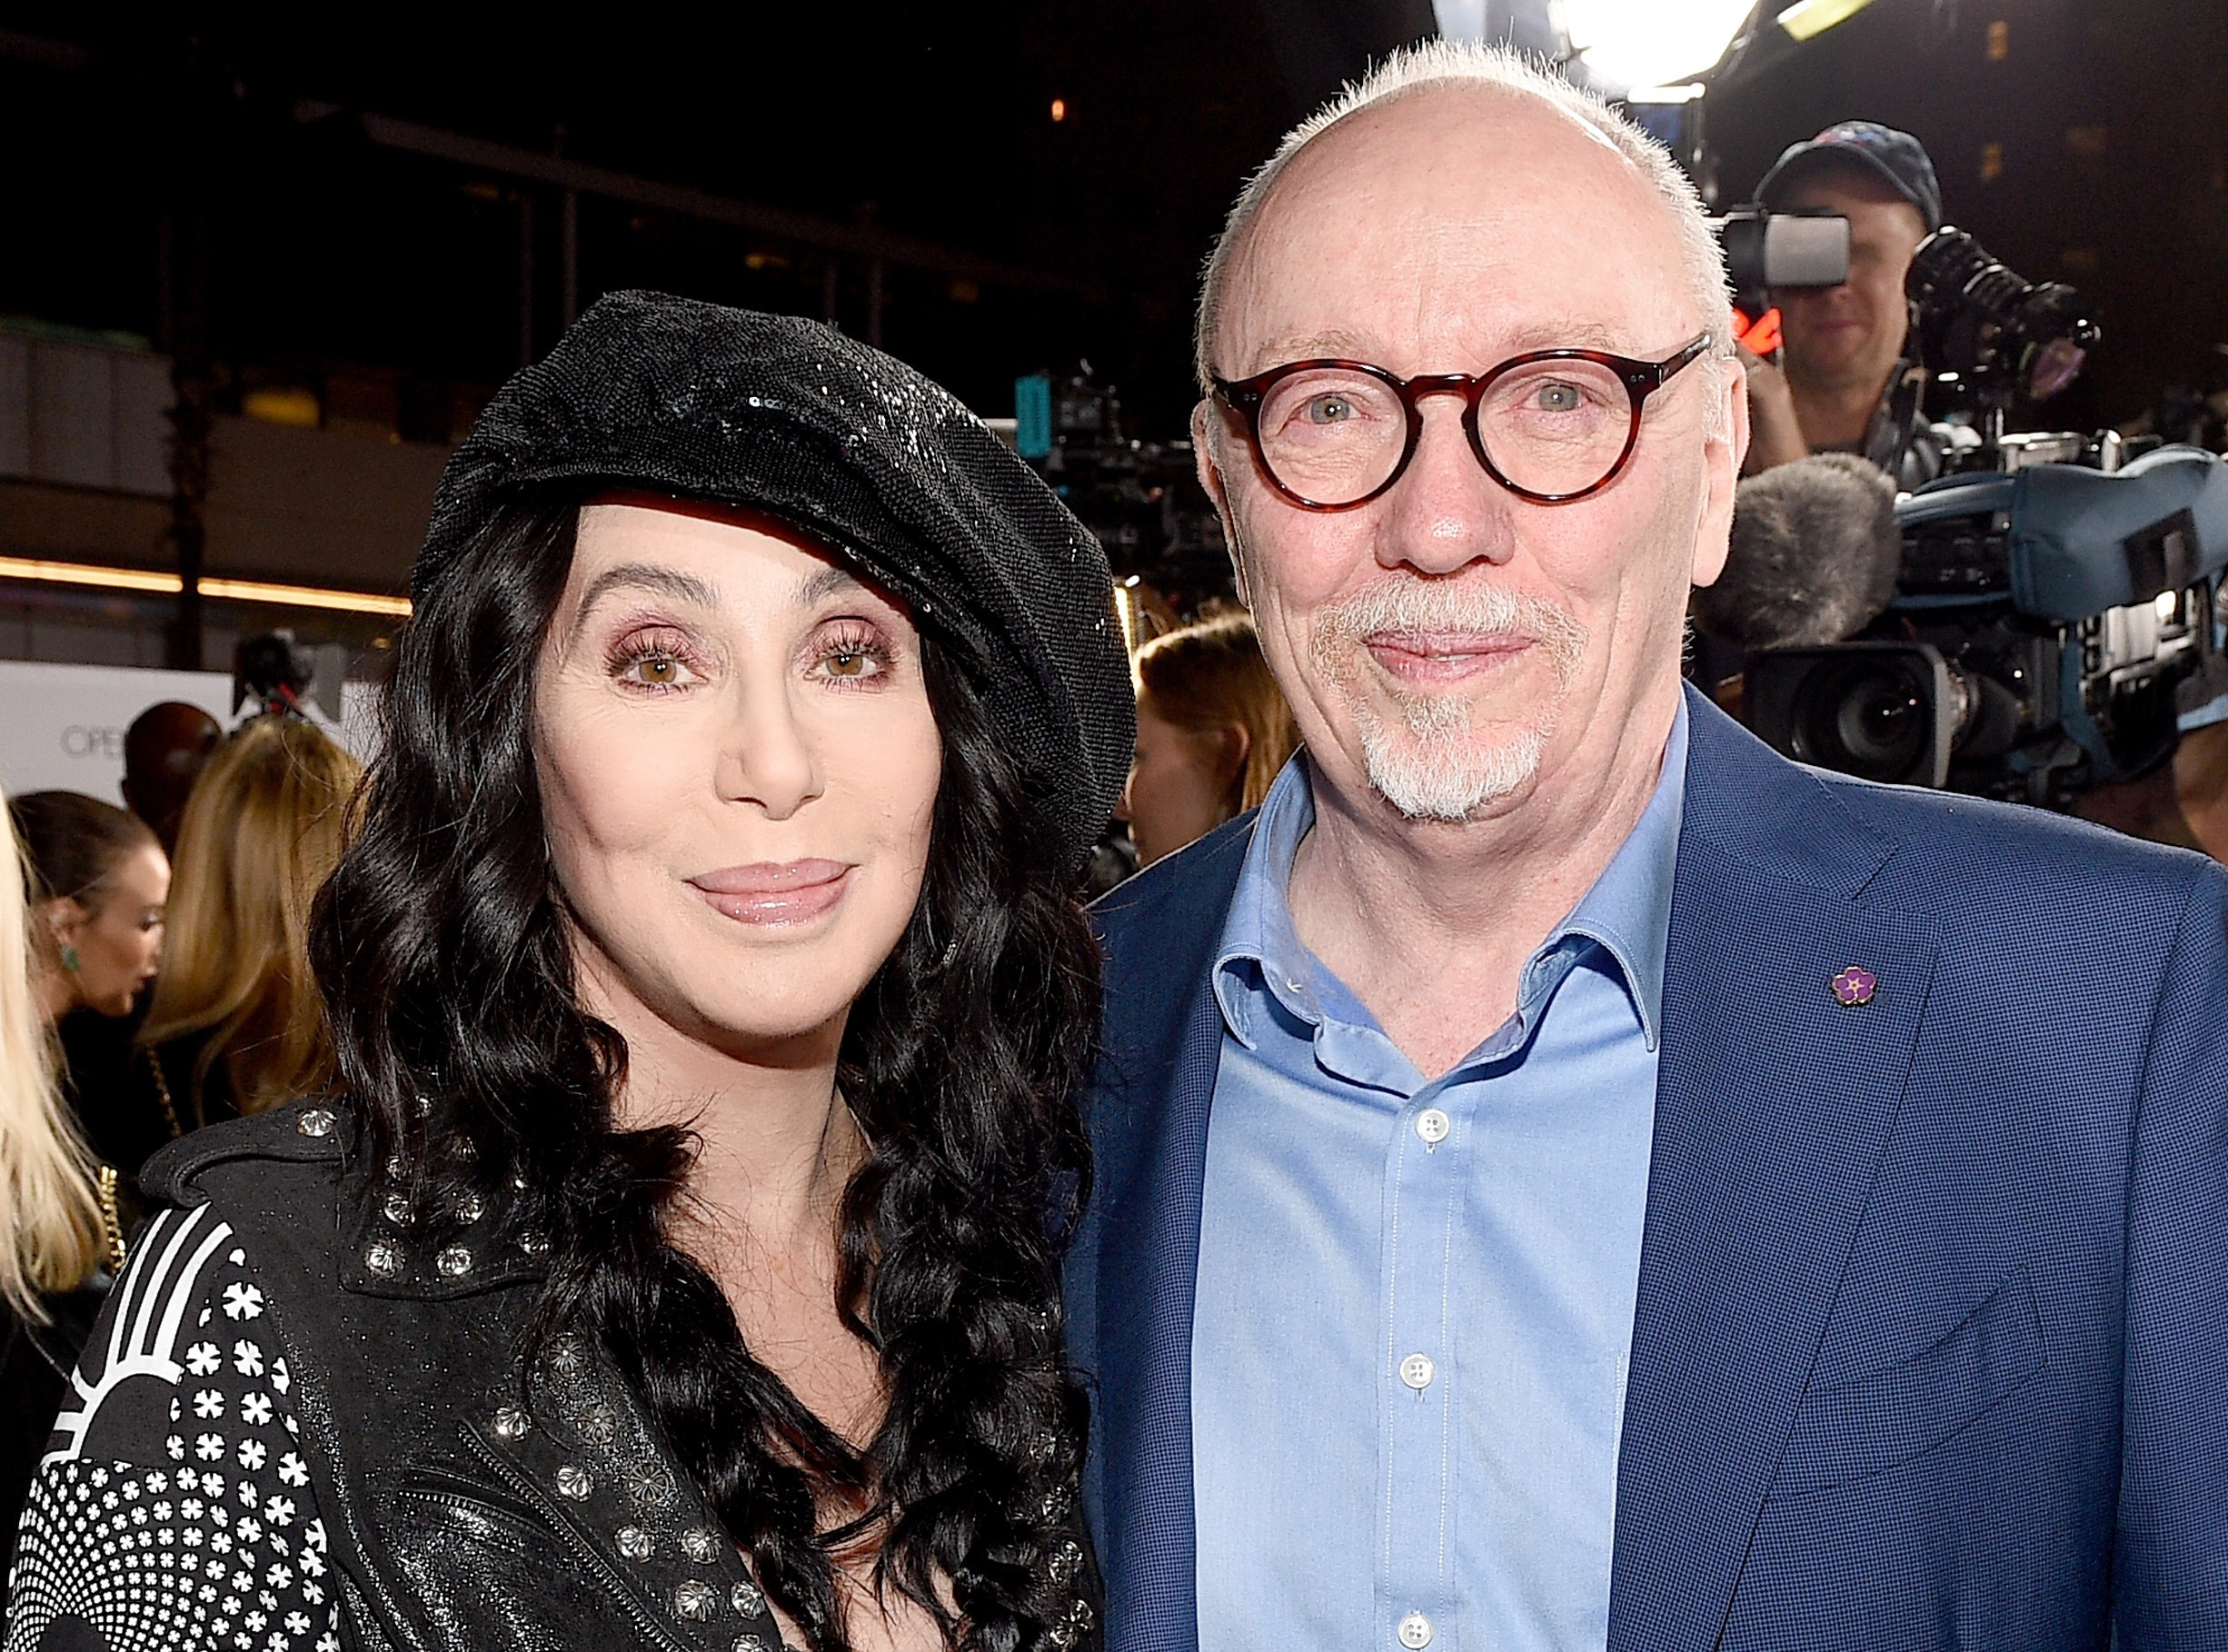 Cher wants a ban on drilling in Ireland.